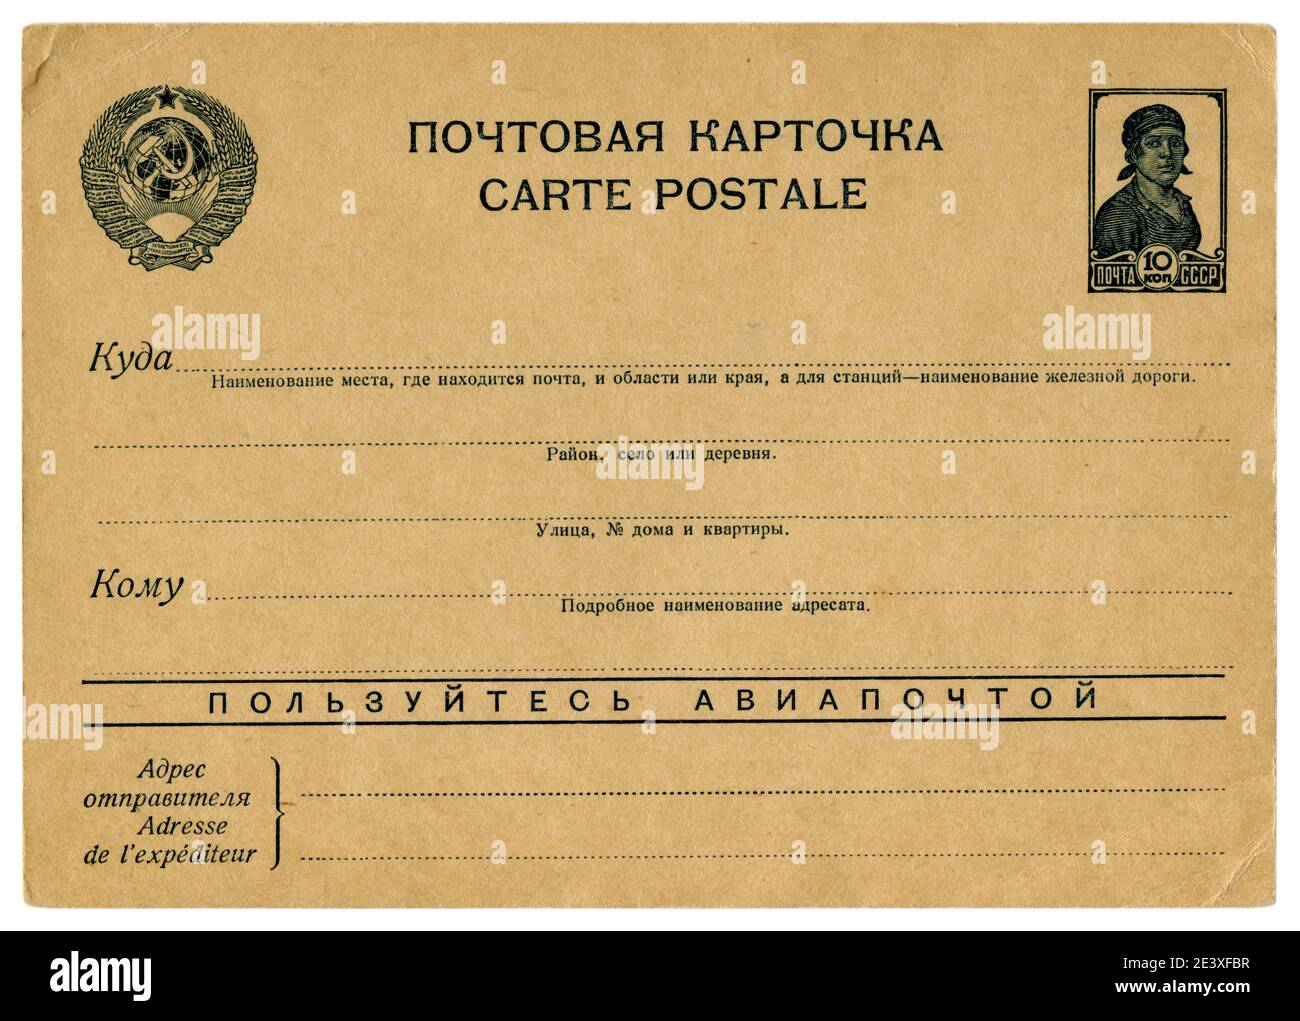 """Soviet historical postal card: Advertising - agitation postcard """"Use the airmail"""" for local correspondence, imprinted postage stamp, workwoman, 1939 Stock Photo"""